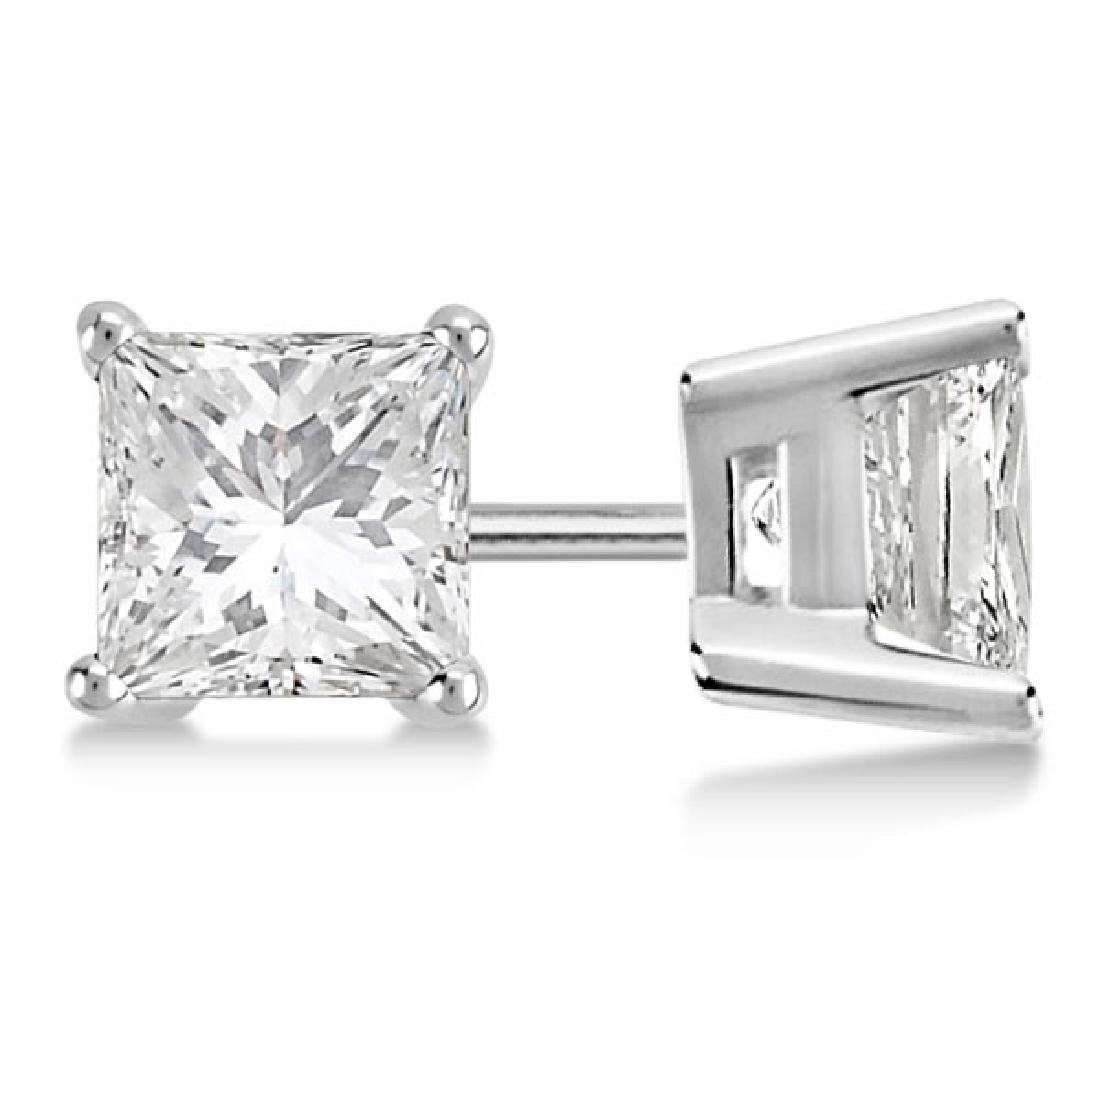 Certified 1.02 CTW Princess Diamond Stud Earrings D/SI3